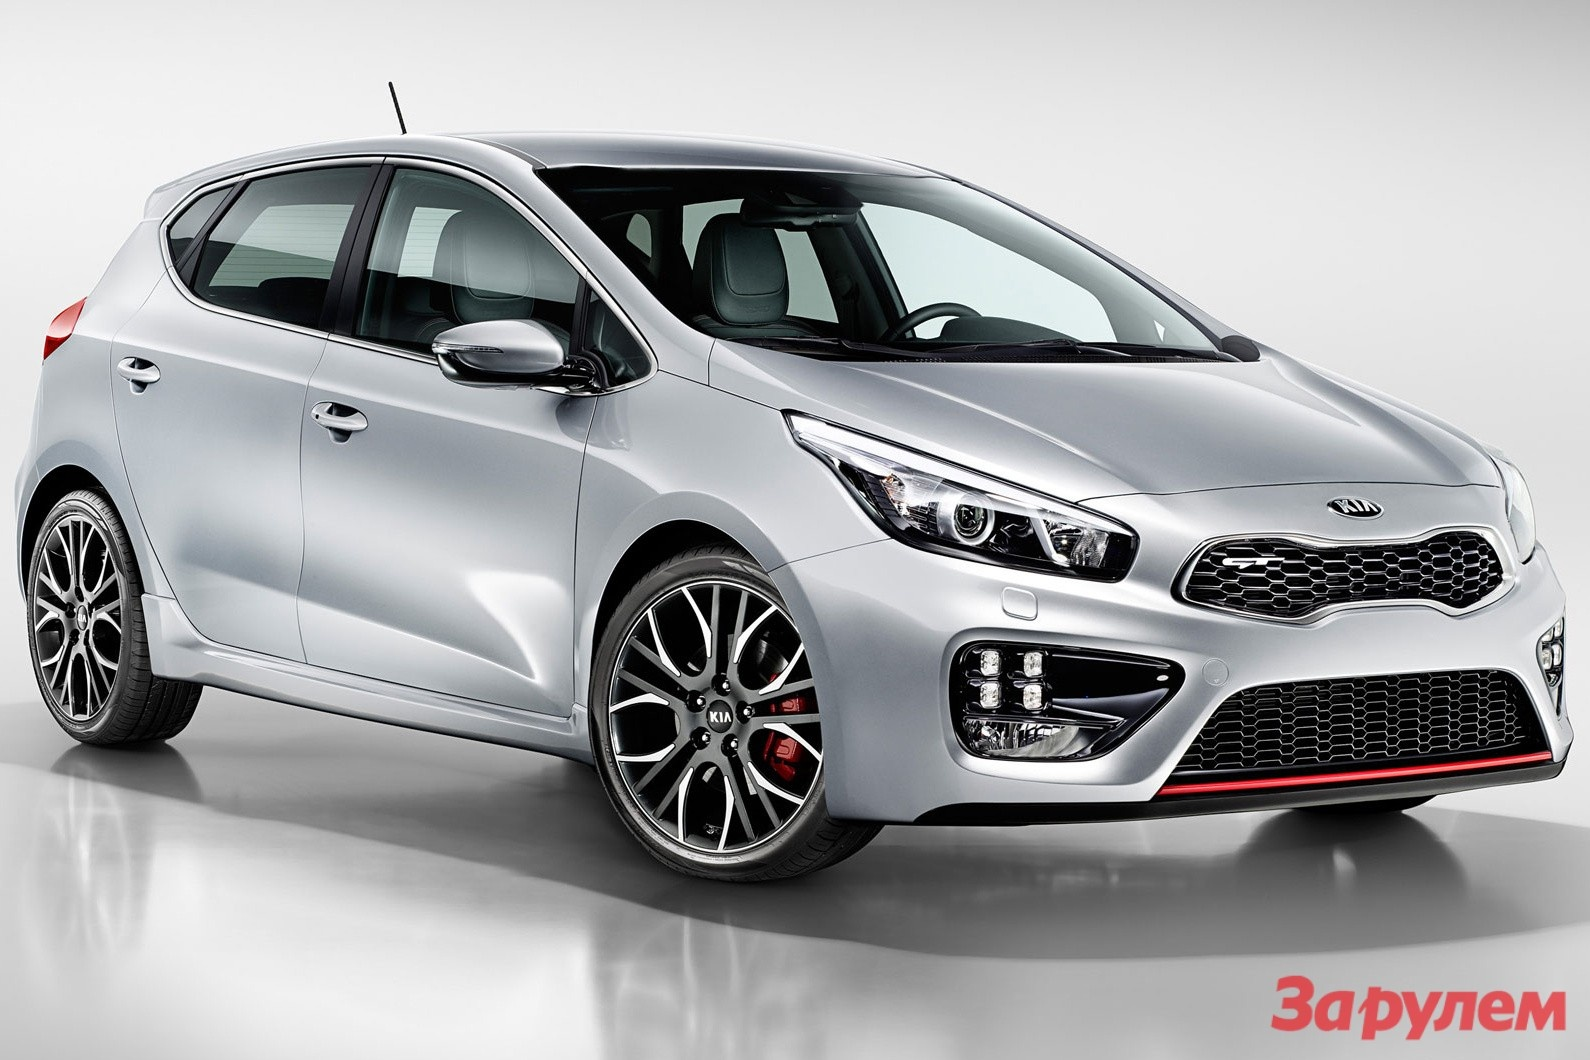 201302150952_kia_ceed_gt_side_front_view